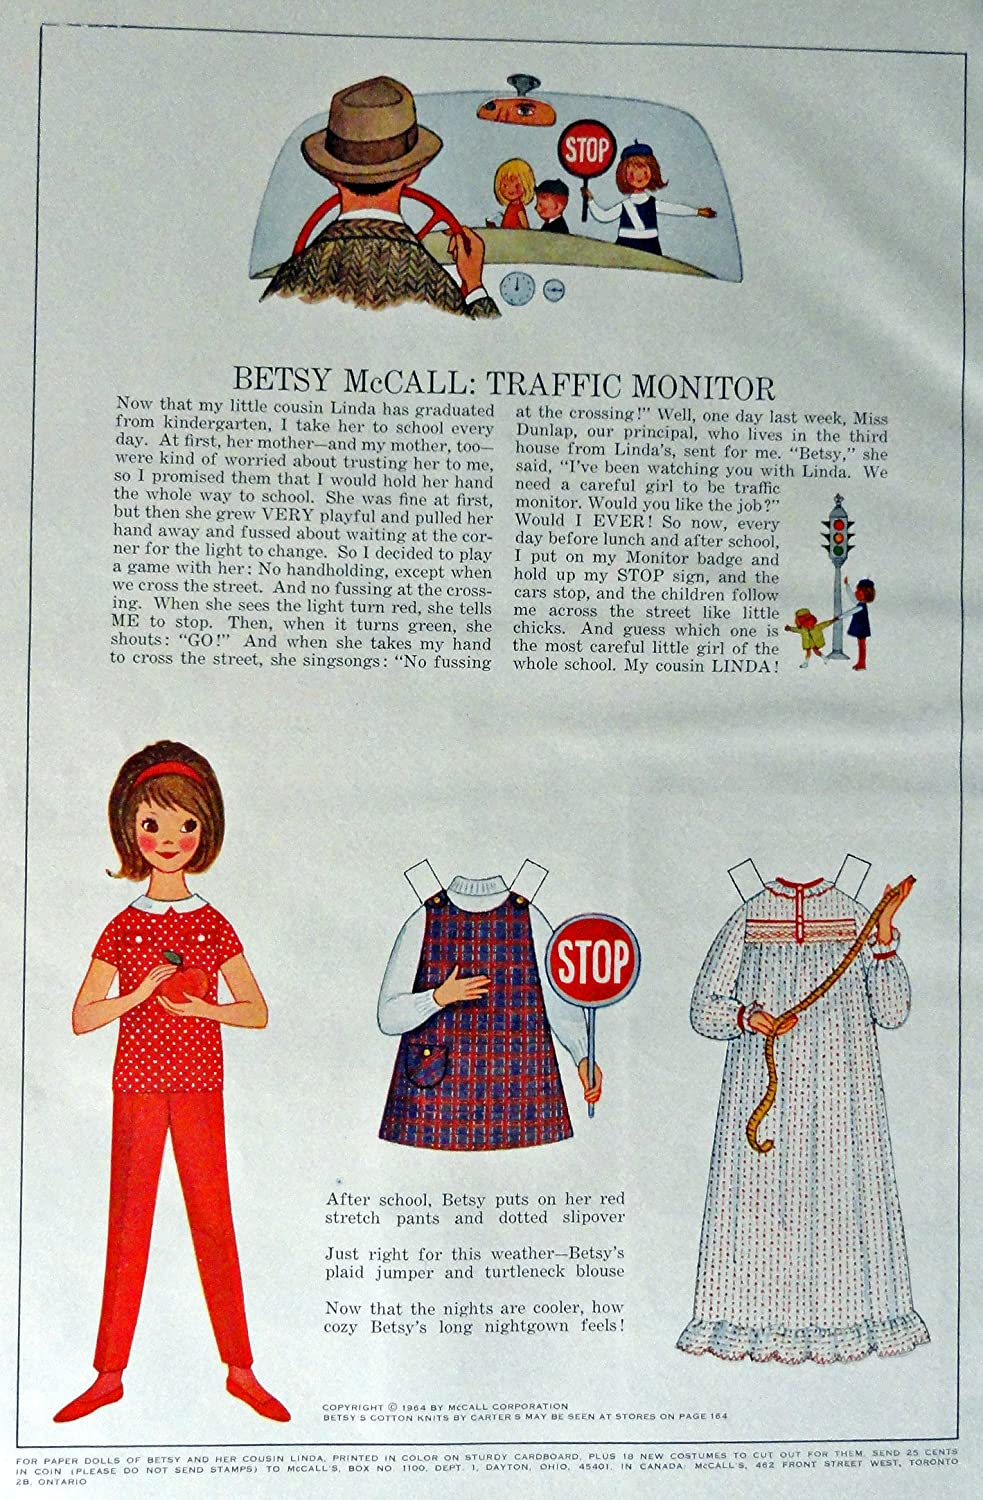 Amazon Com Betsy Mccall Print Advertisment 60 S Color Illustration 10 1 4 X 13 1 4 Full Page Print Art Traffic Monitor Original Vintage 1956 Mccall S Magazine Print Artstore Link Www Amazon Com Shops Ads Thru Time Other Products Posters